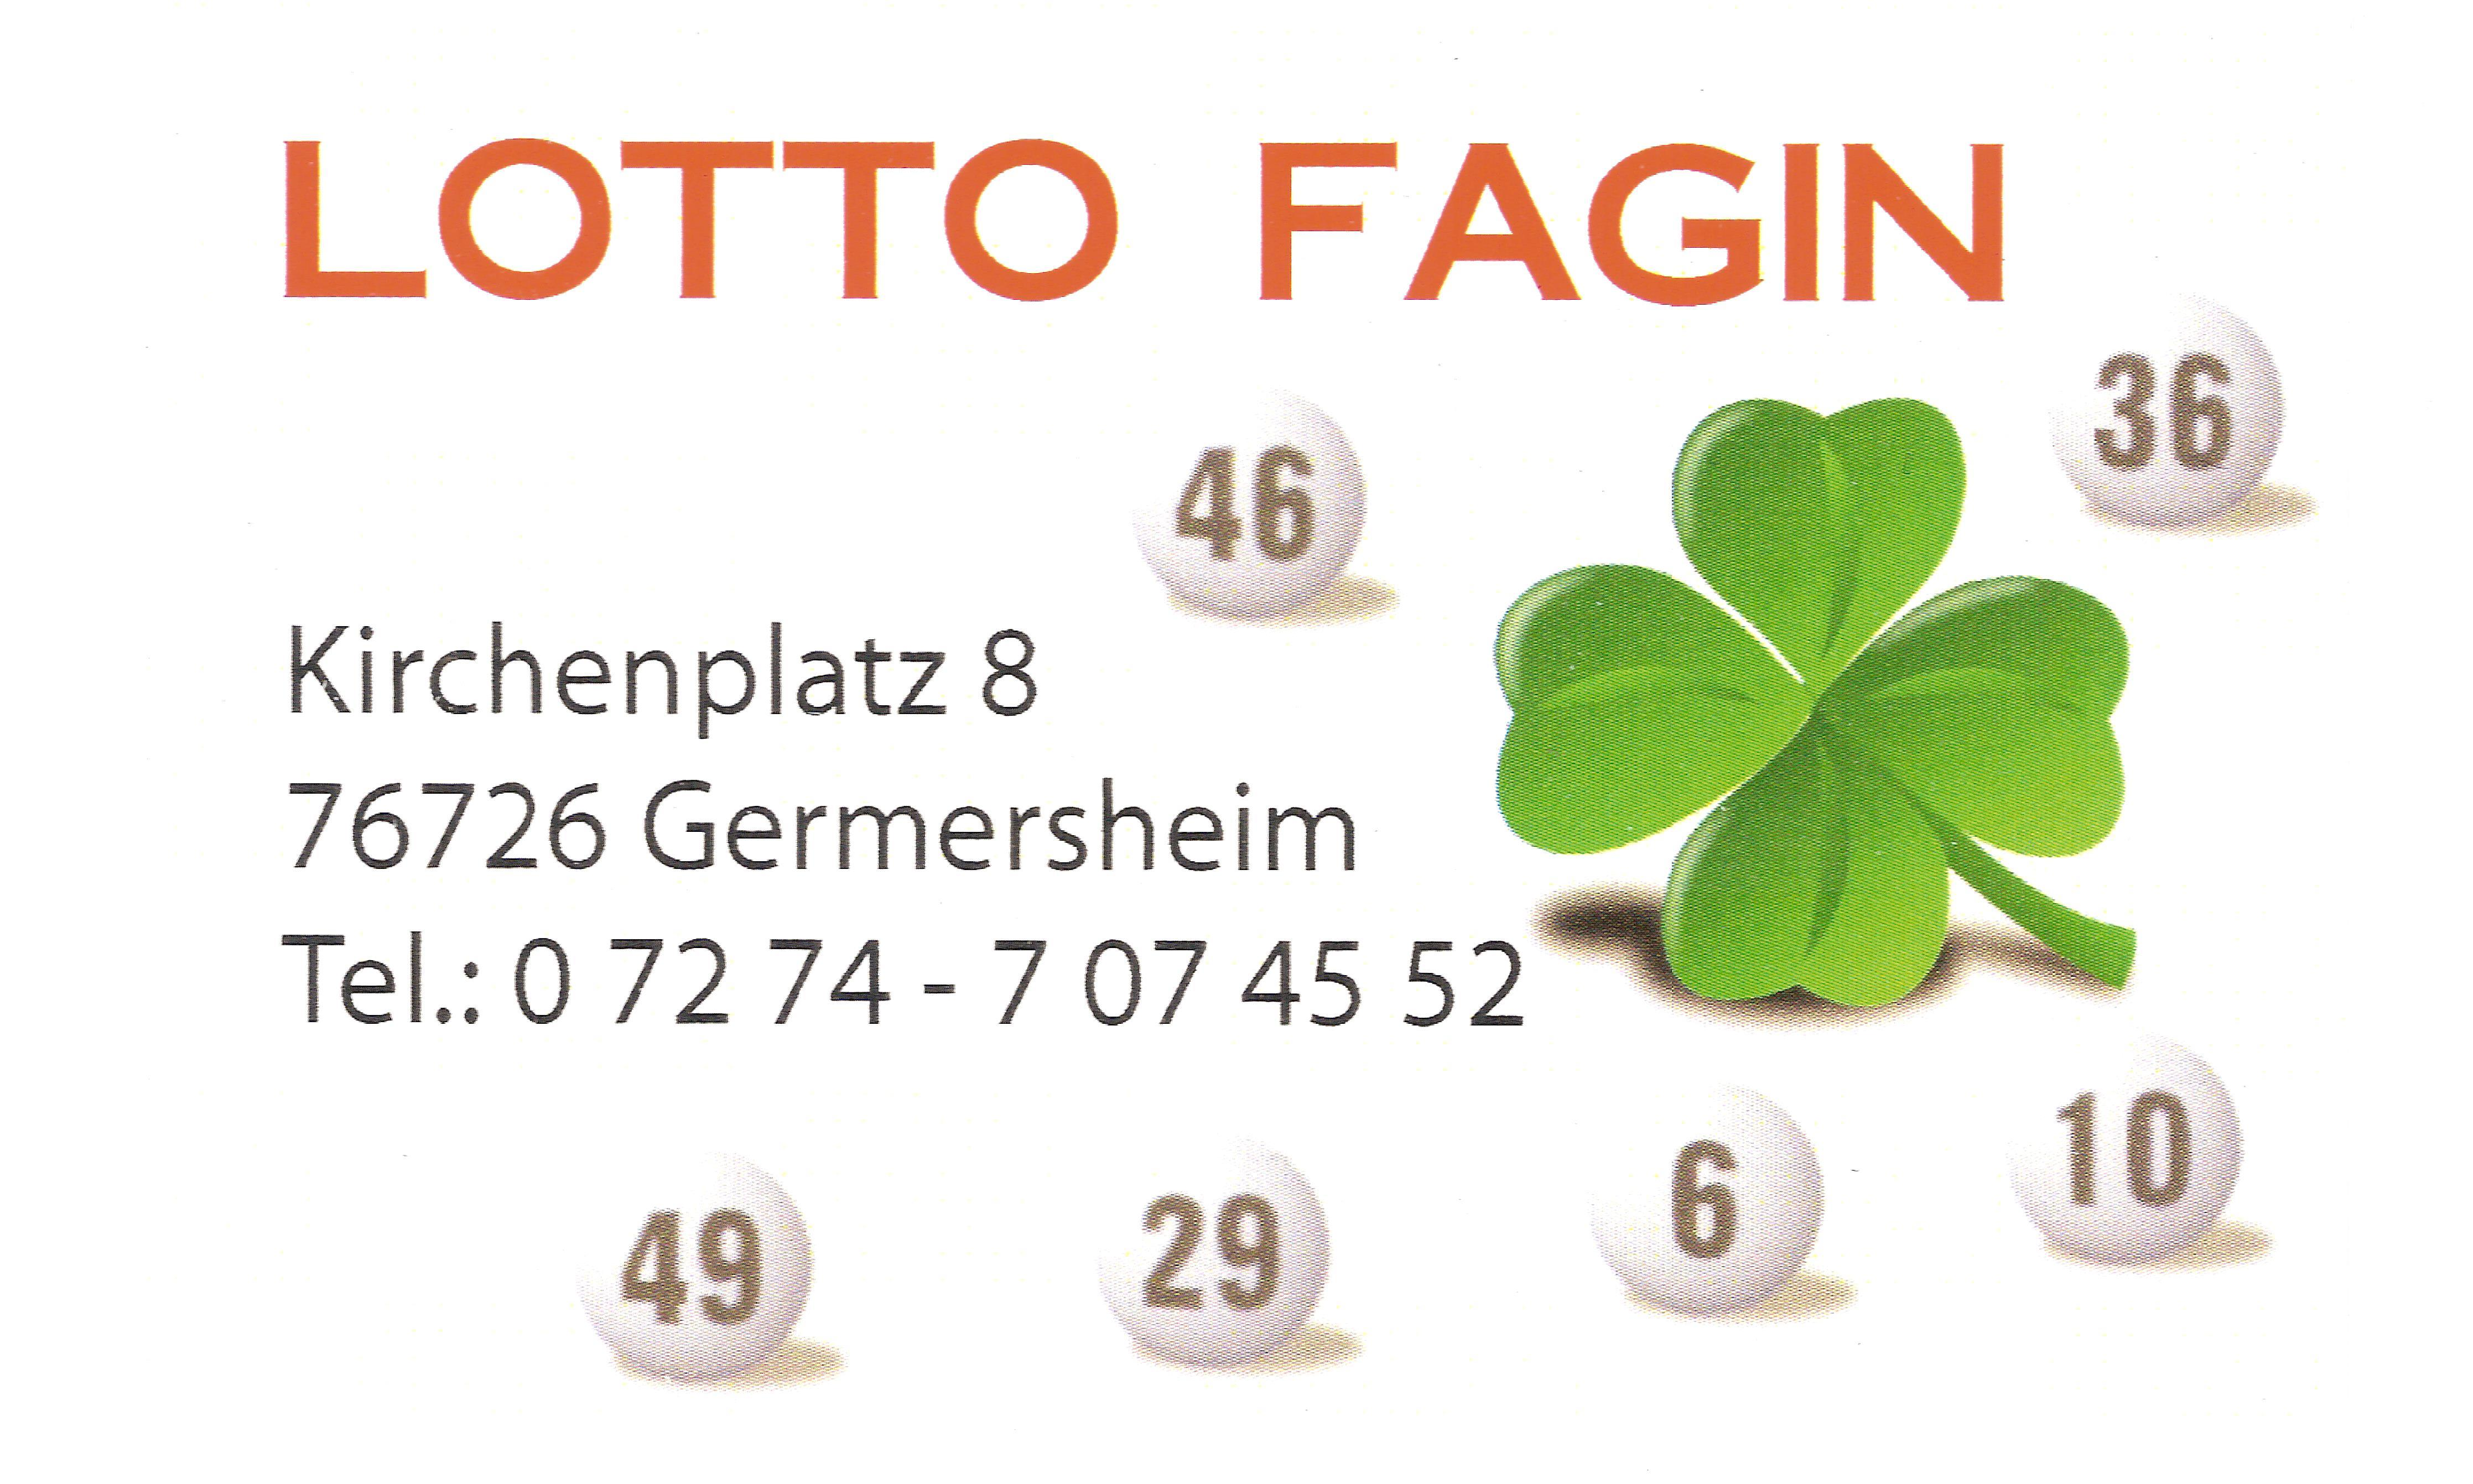 Lotto-Fagin Germersheim